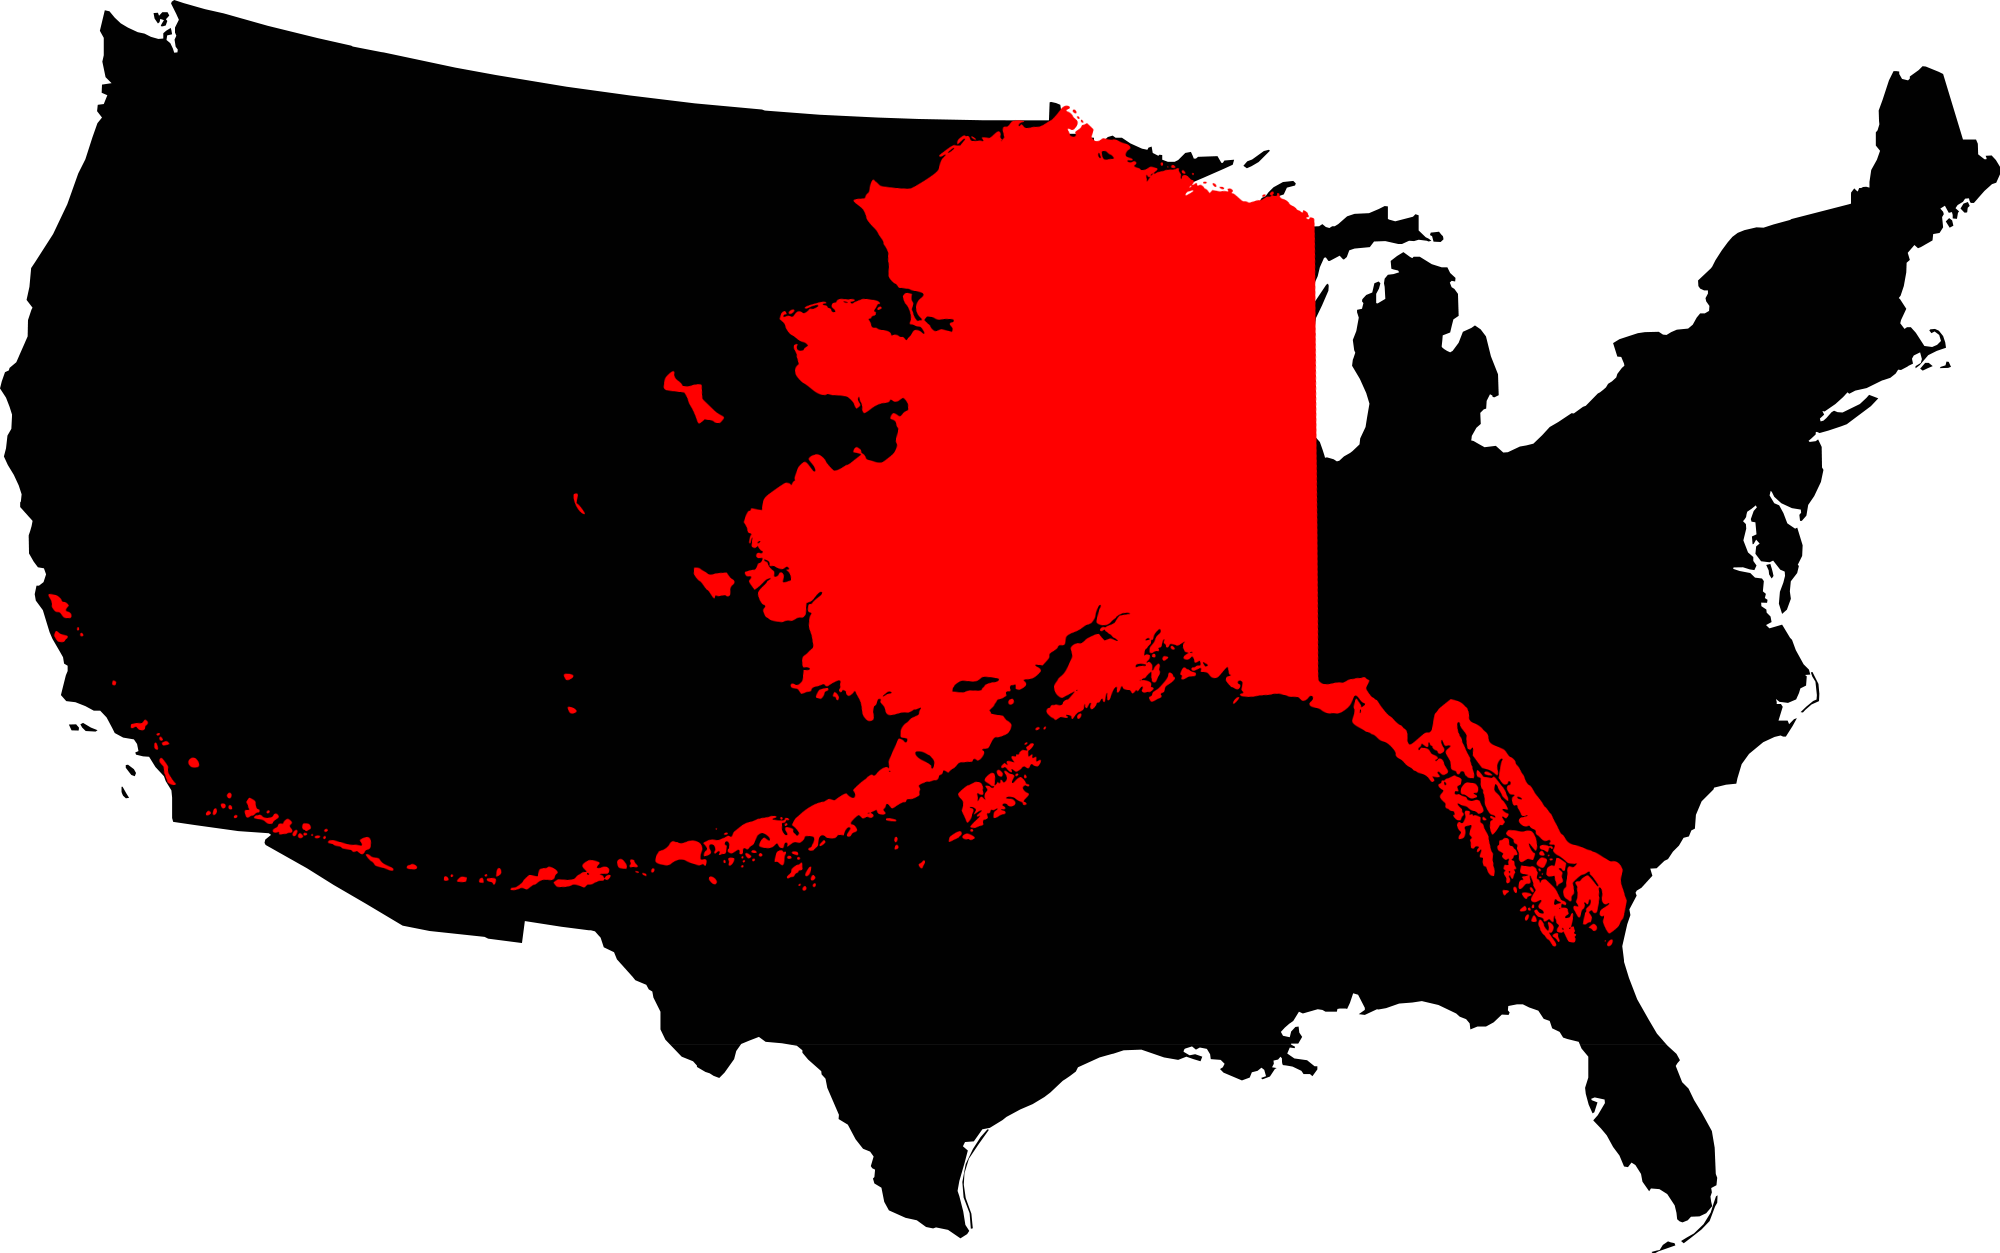 FileAlaska Compared To The United States Mappng Wikimedia Commons - Alaska us map